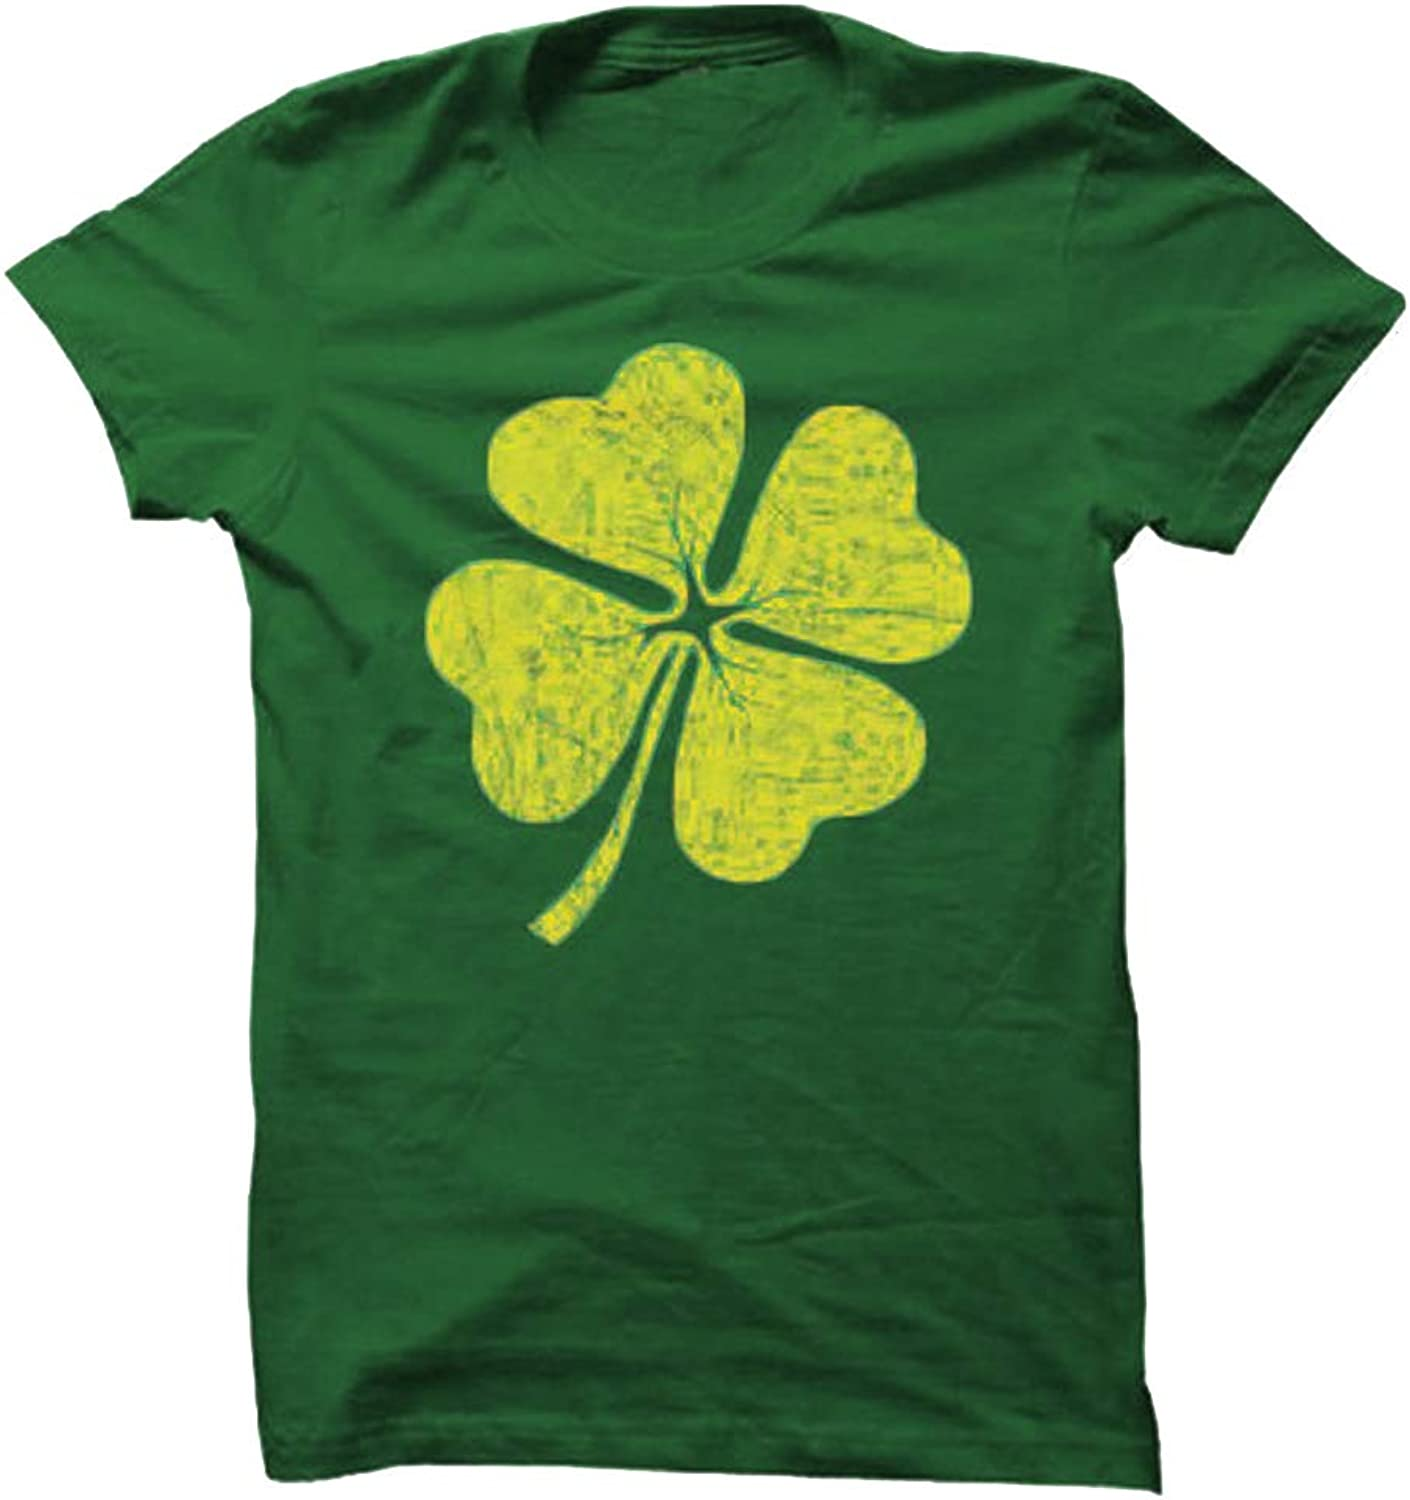 Chulianyouhuo Women's ST. Patrick's Day Shirts Casual Short Sleeve Tops Shamrock Shirt Tops